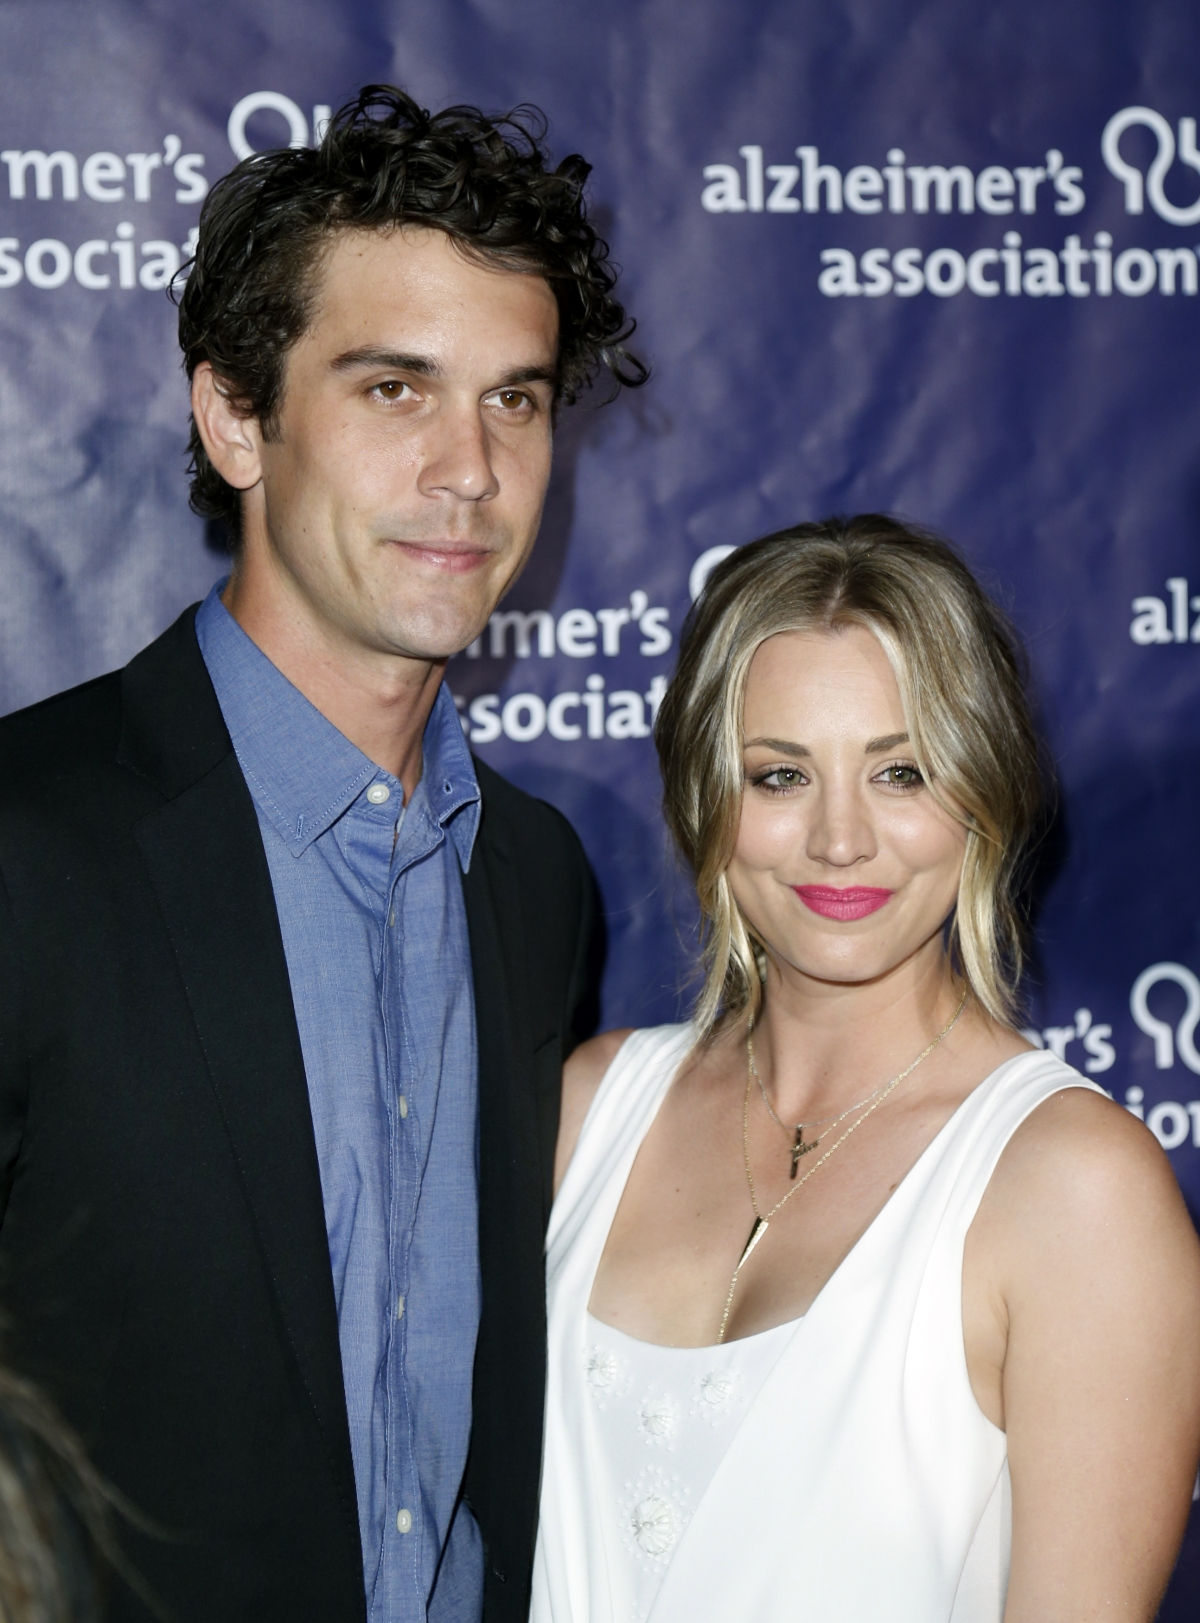 Kaley cuoco engaged johnny galecki for pinterest